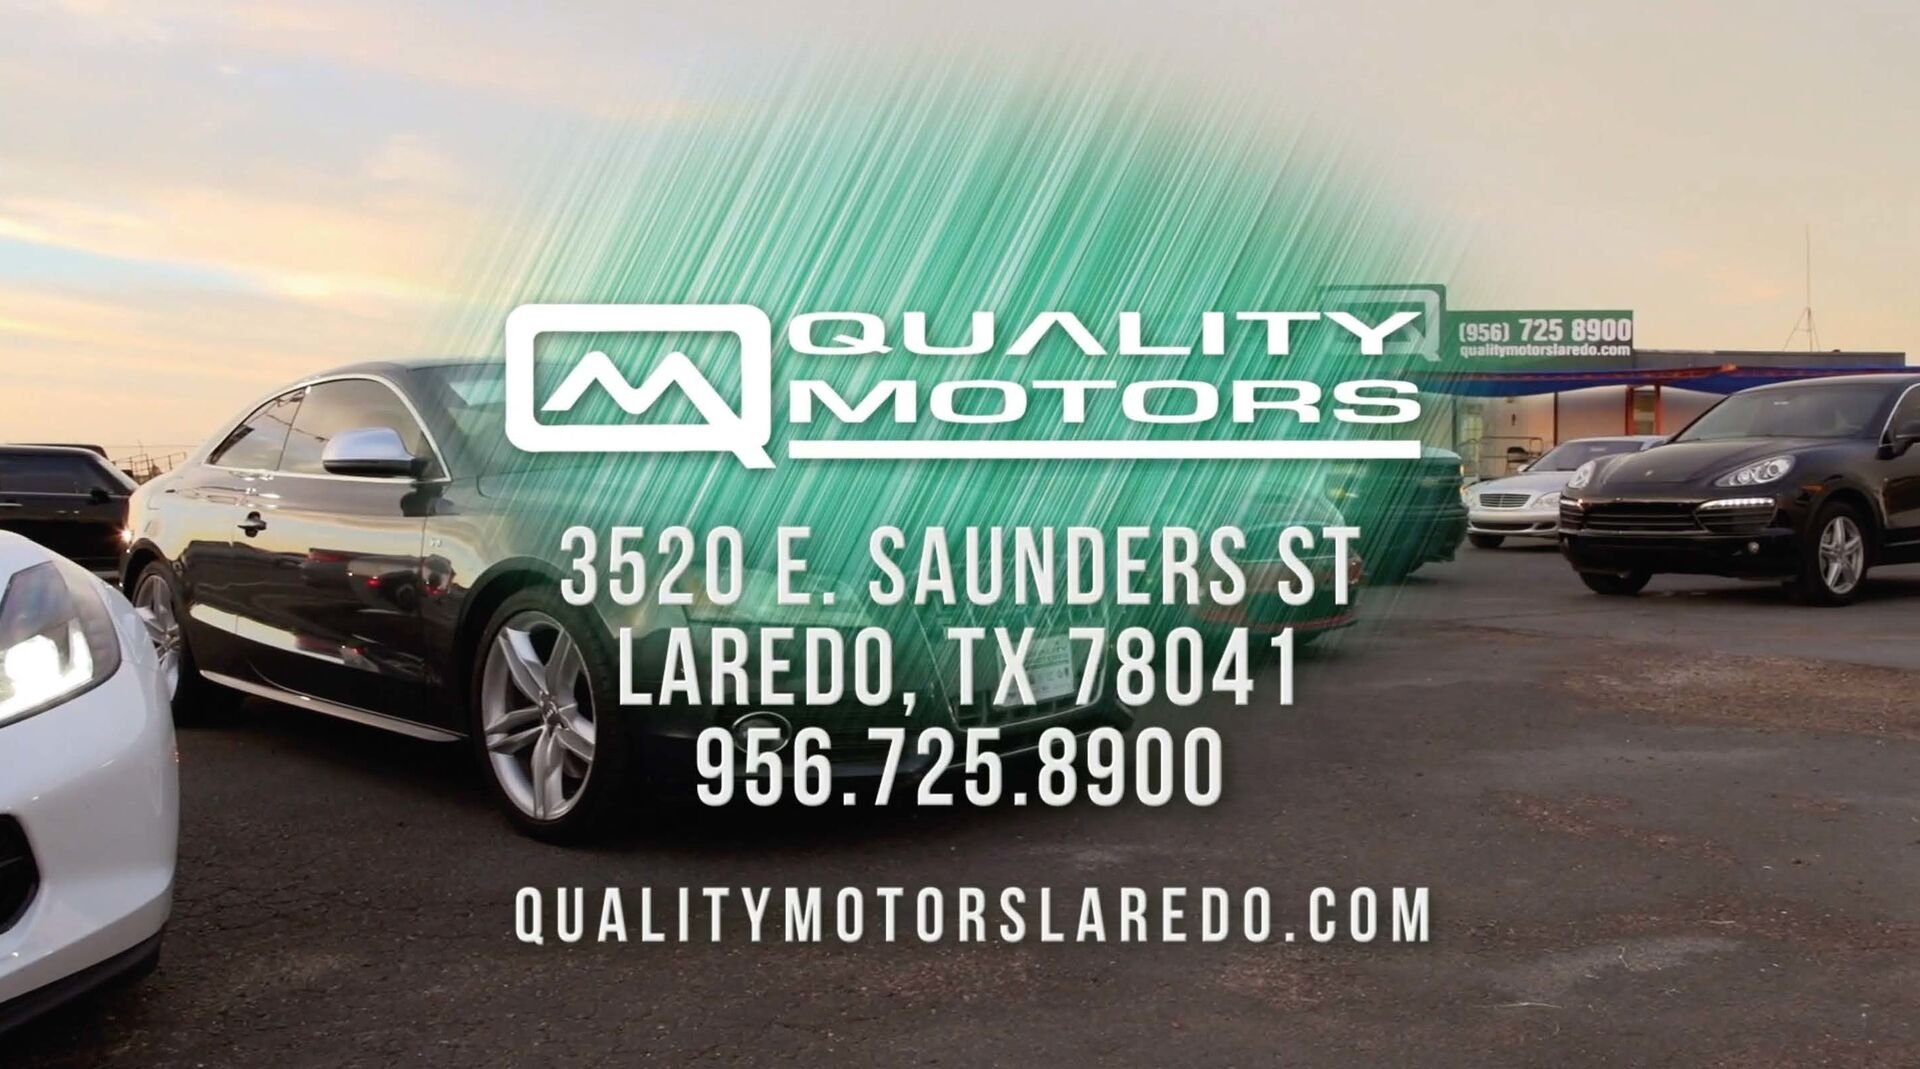 Cars For Sale In Laredo Tx >> Used Car Dealership Laredo Tx Quality Motors